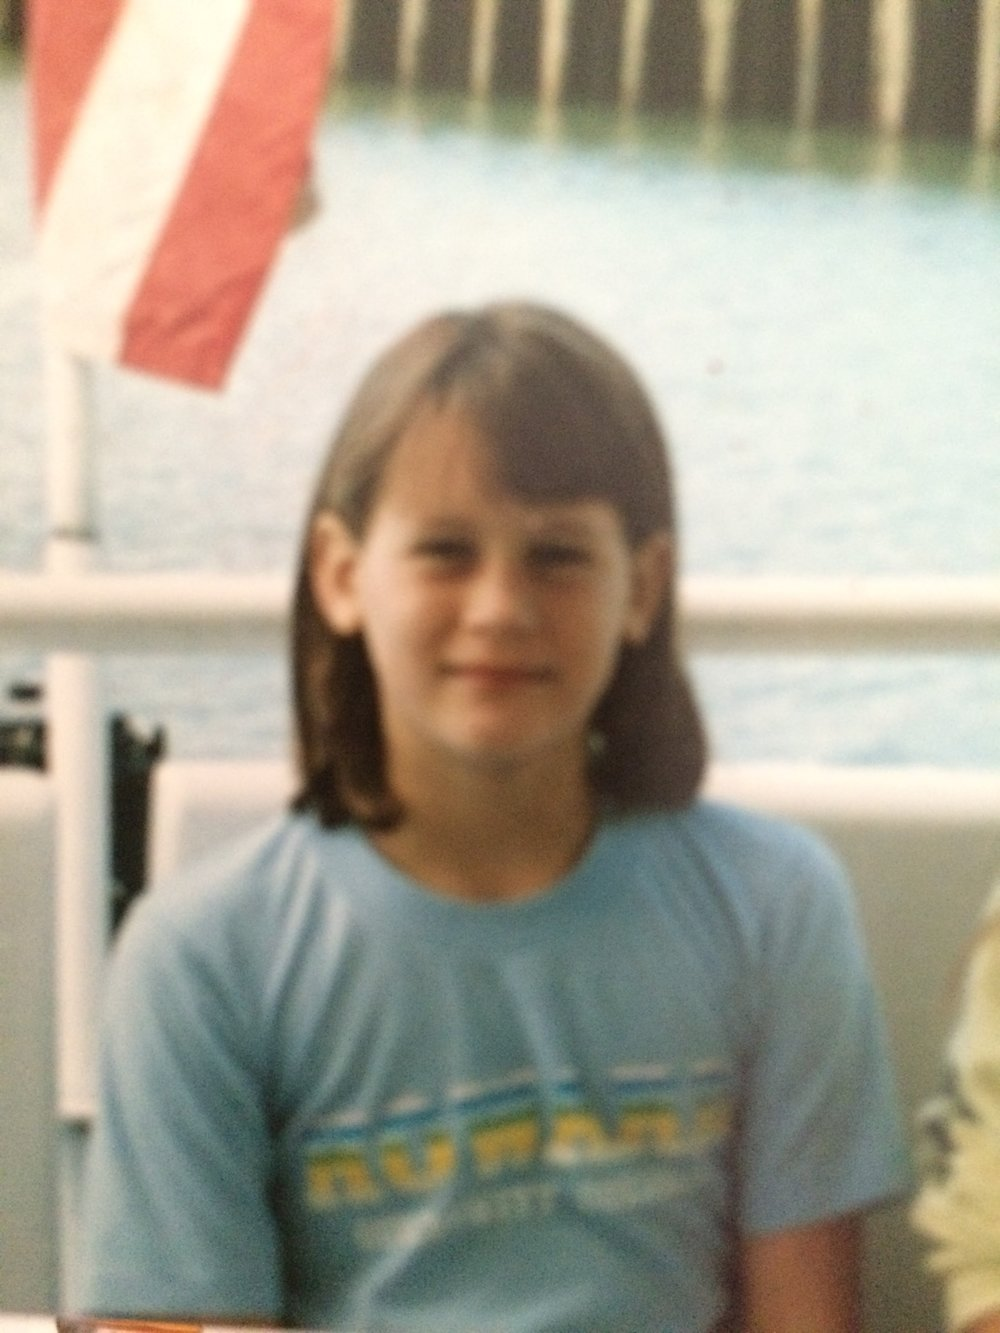 Me as a kid around 10 years old. I lived in t-shirts.